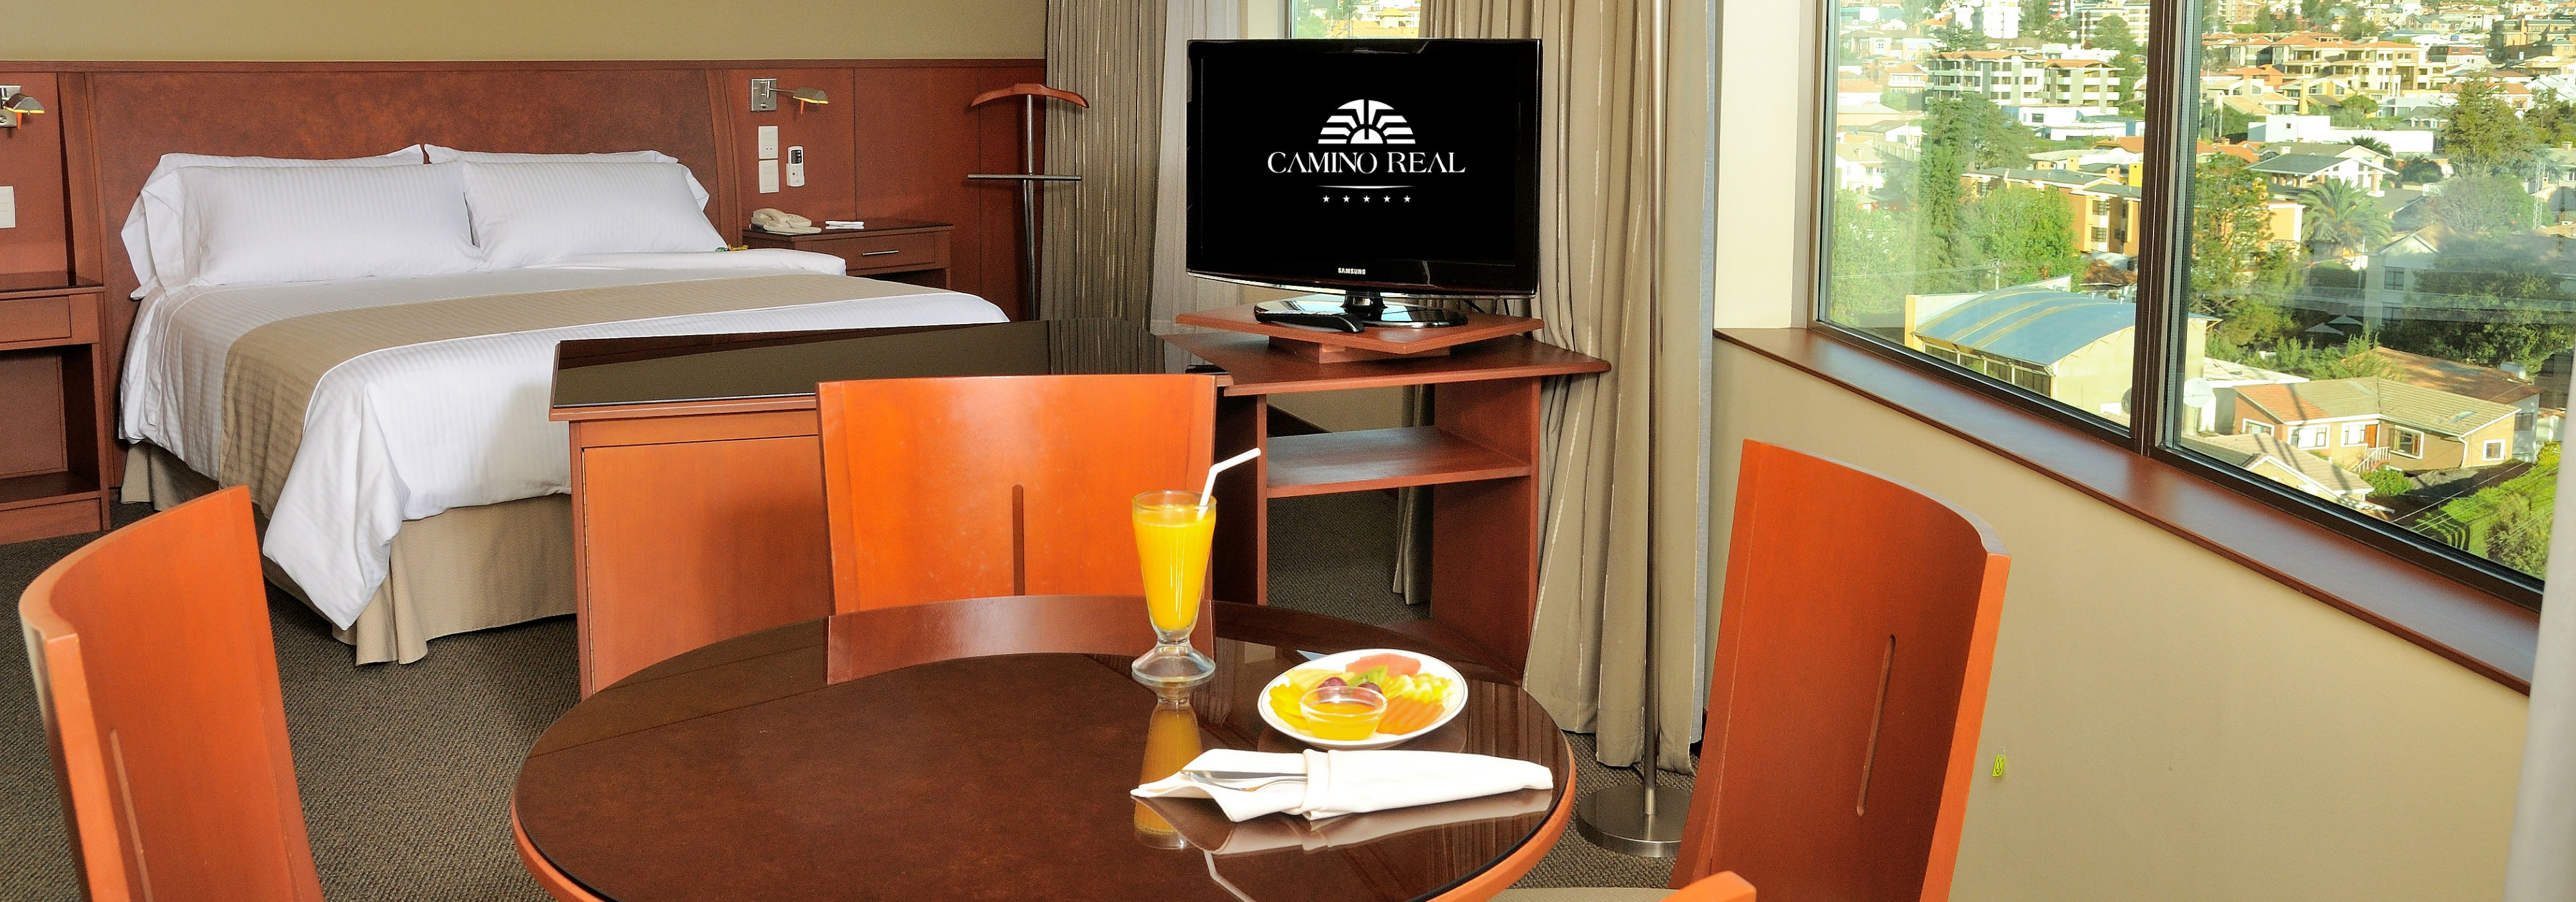 Camino Real Suites Rooms